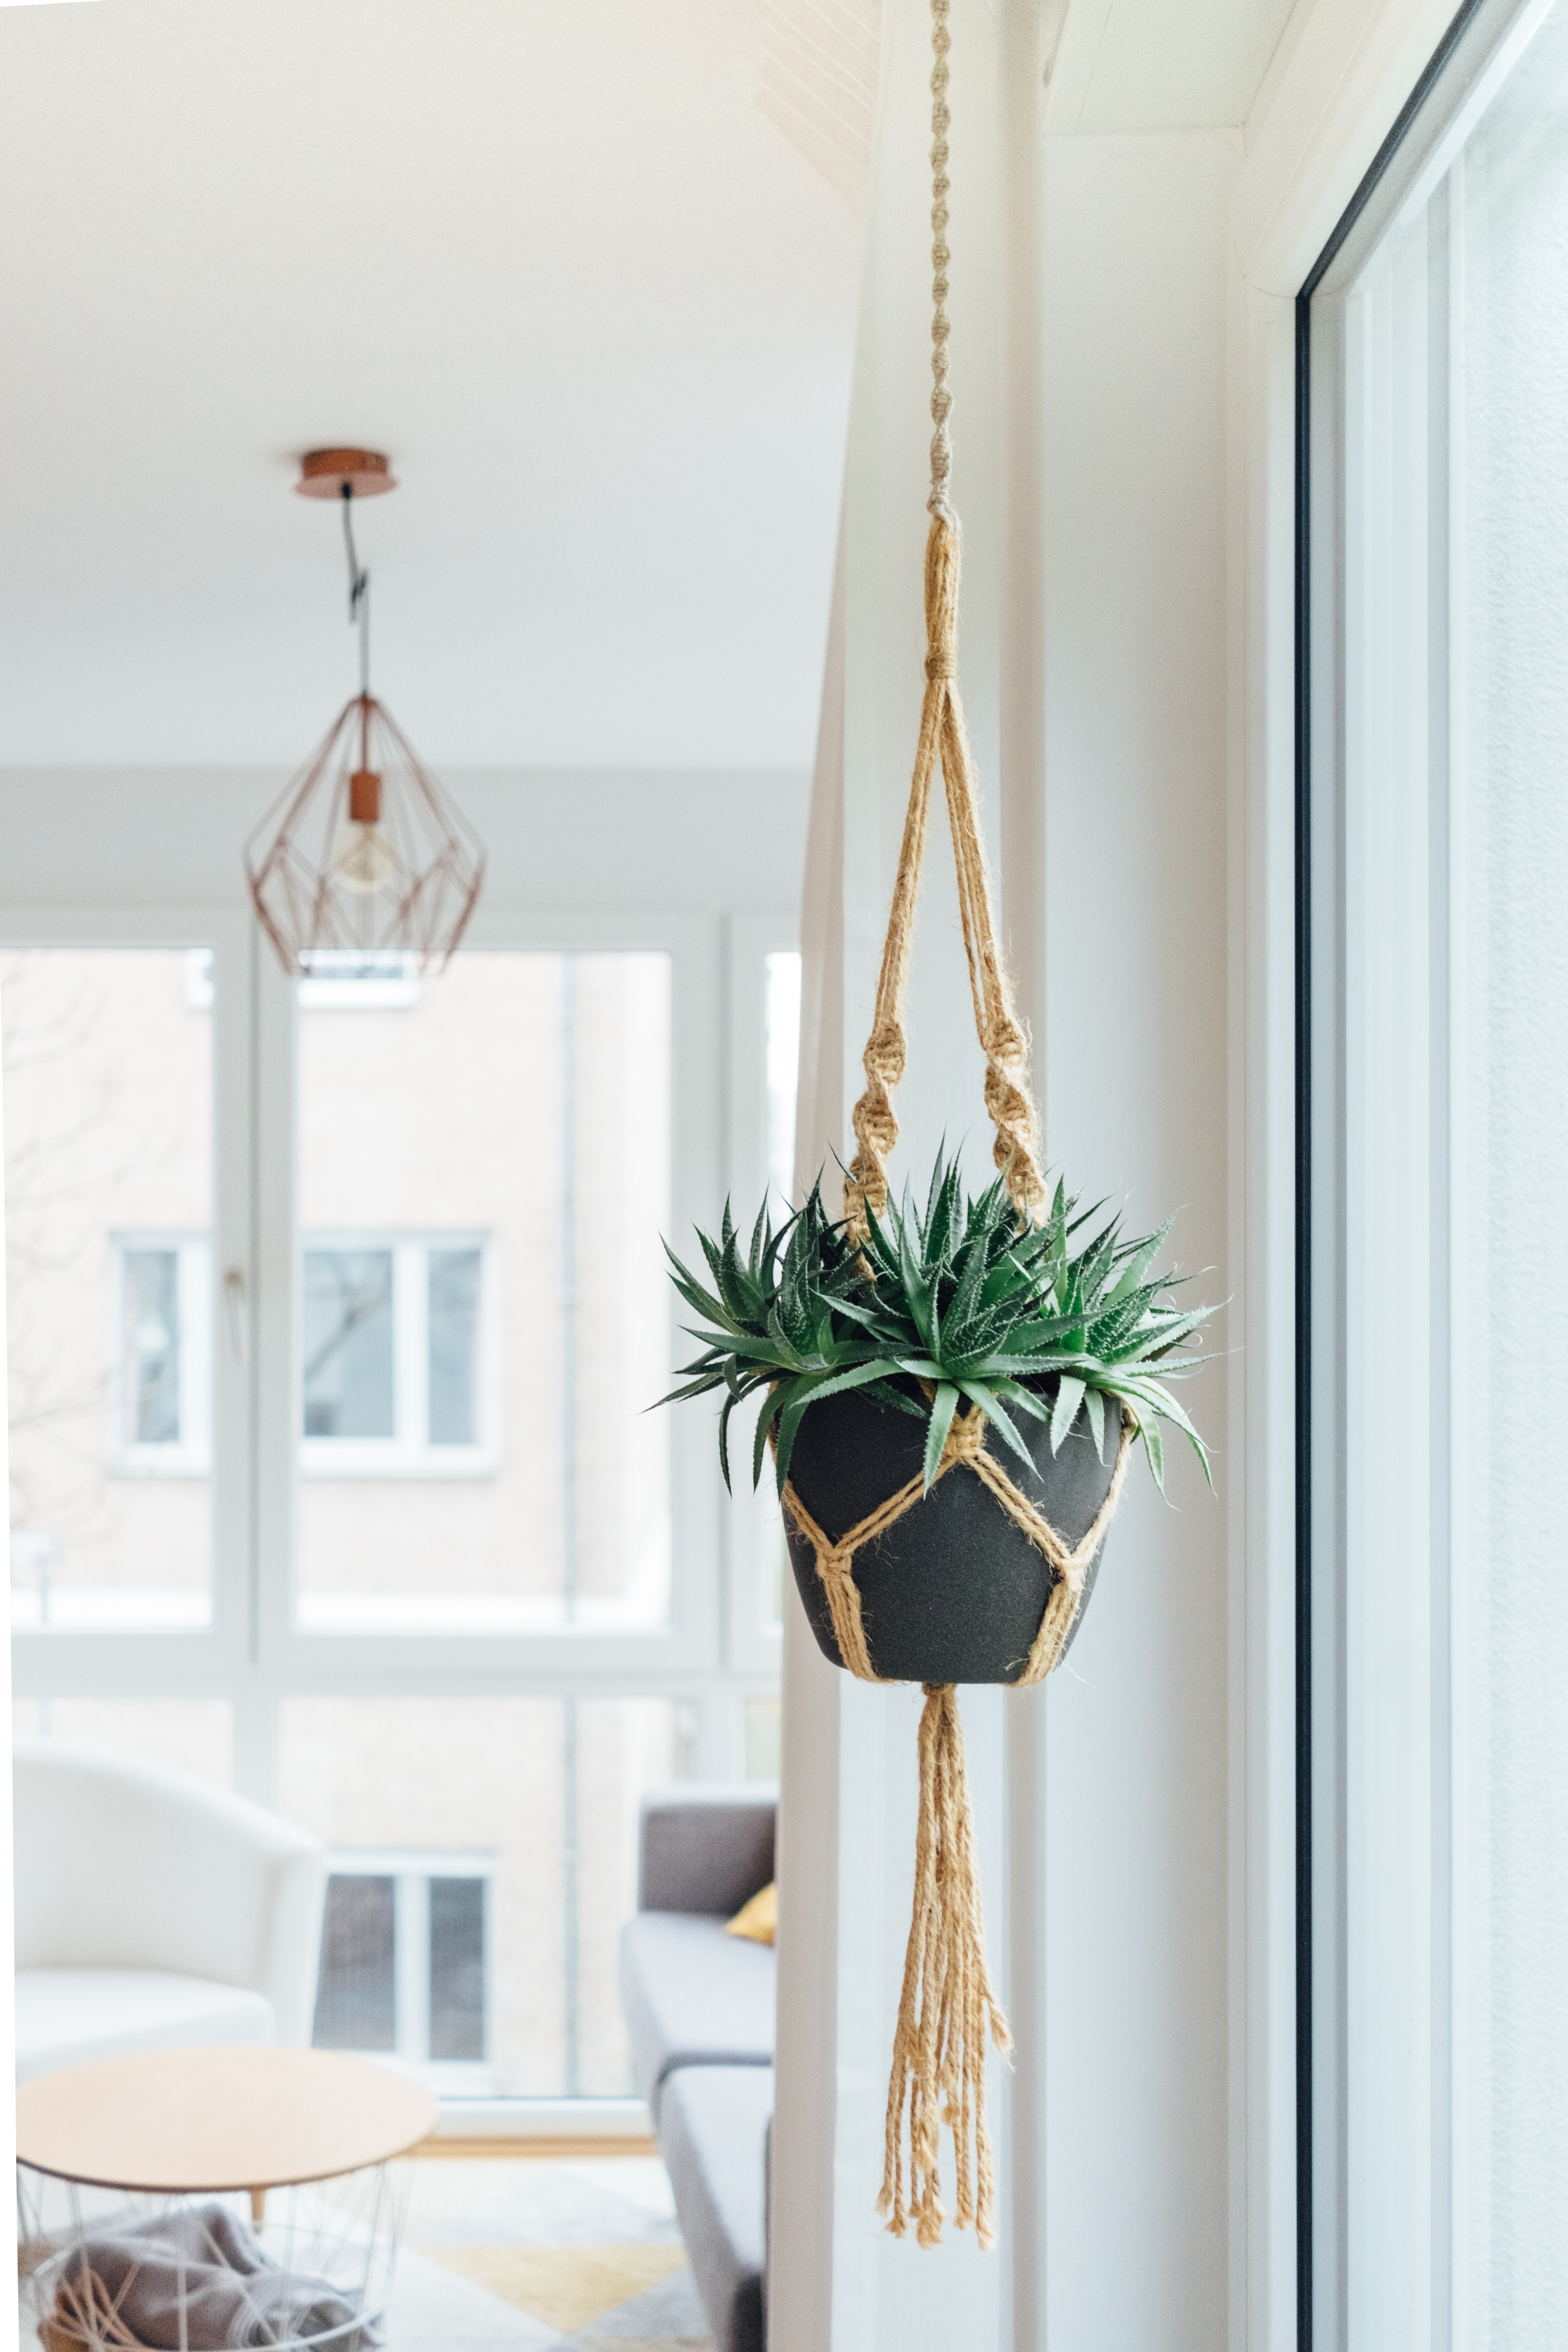 Best summer houseplants - hanging baskets